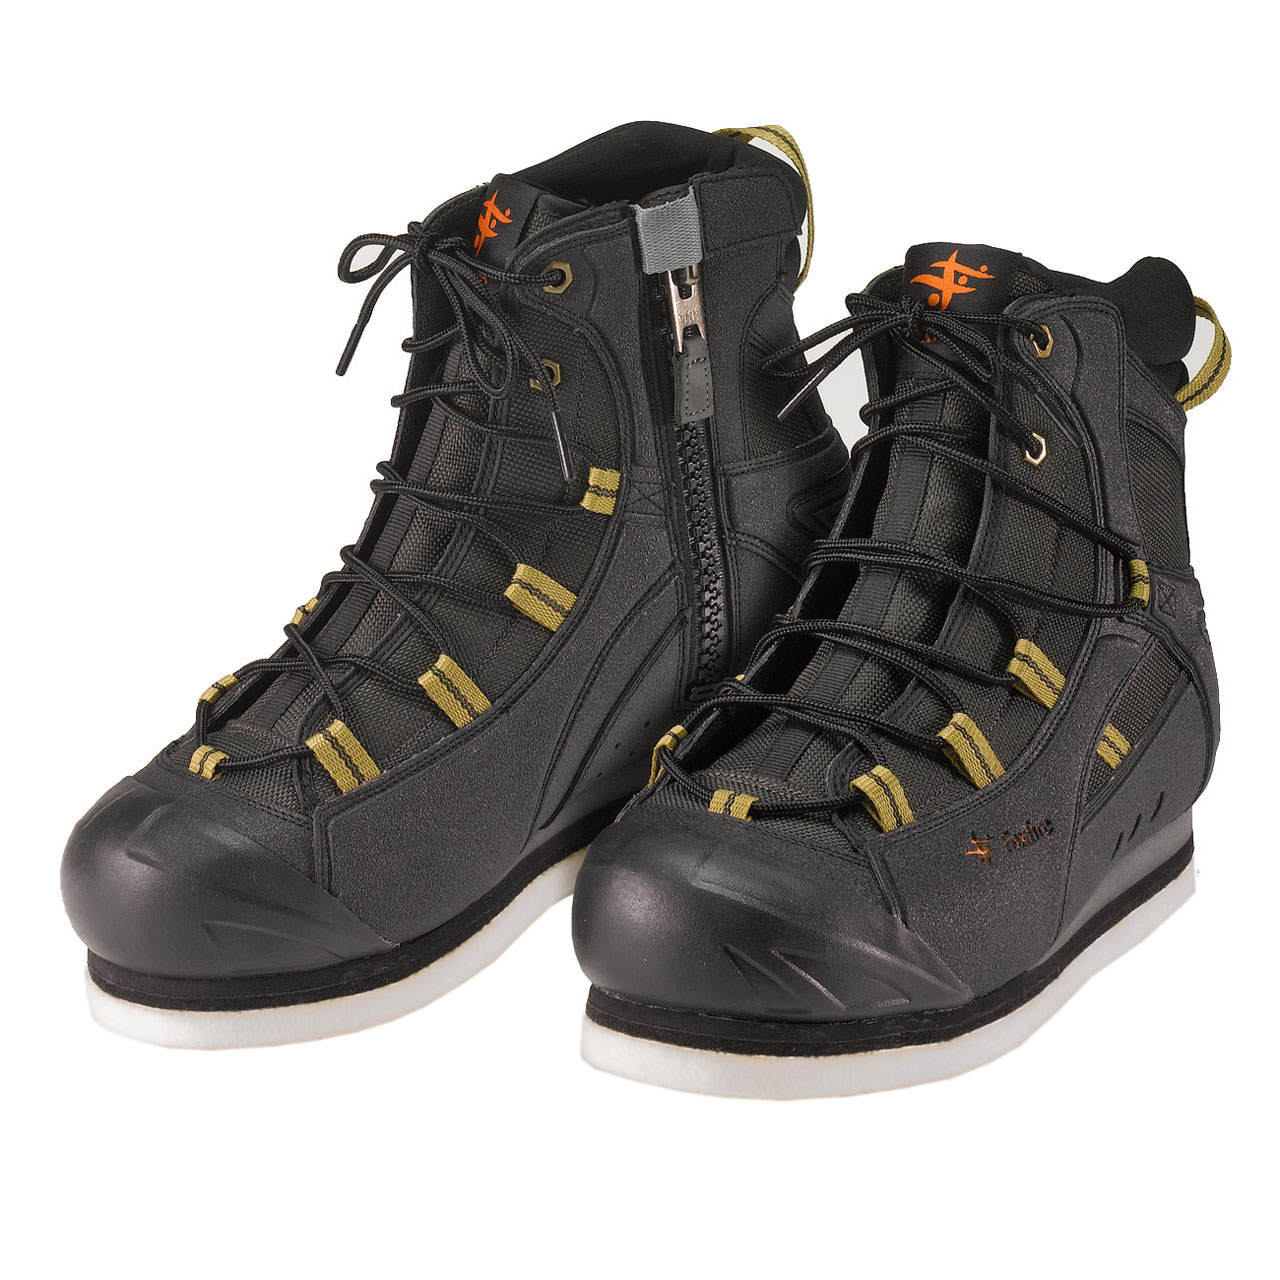 Quick Zip 5 Wading Shoes